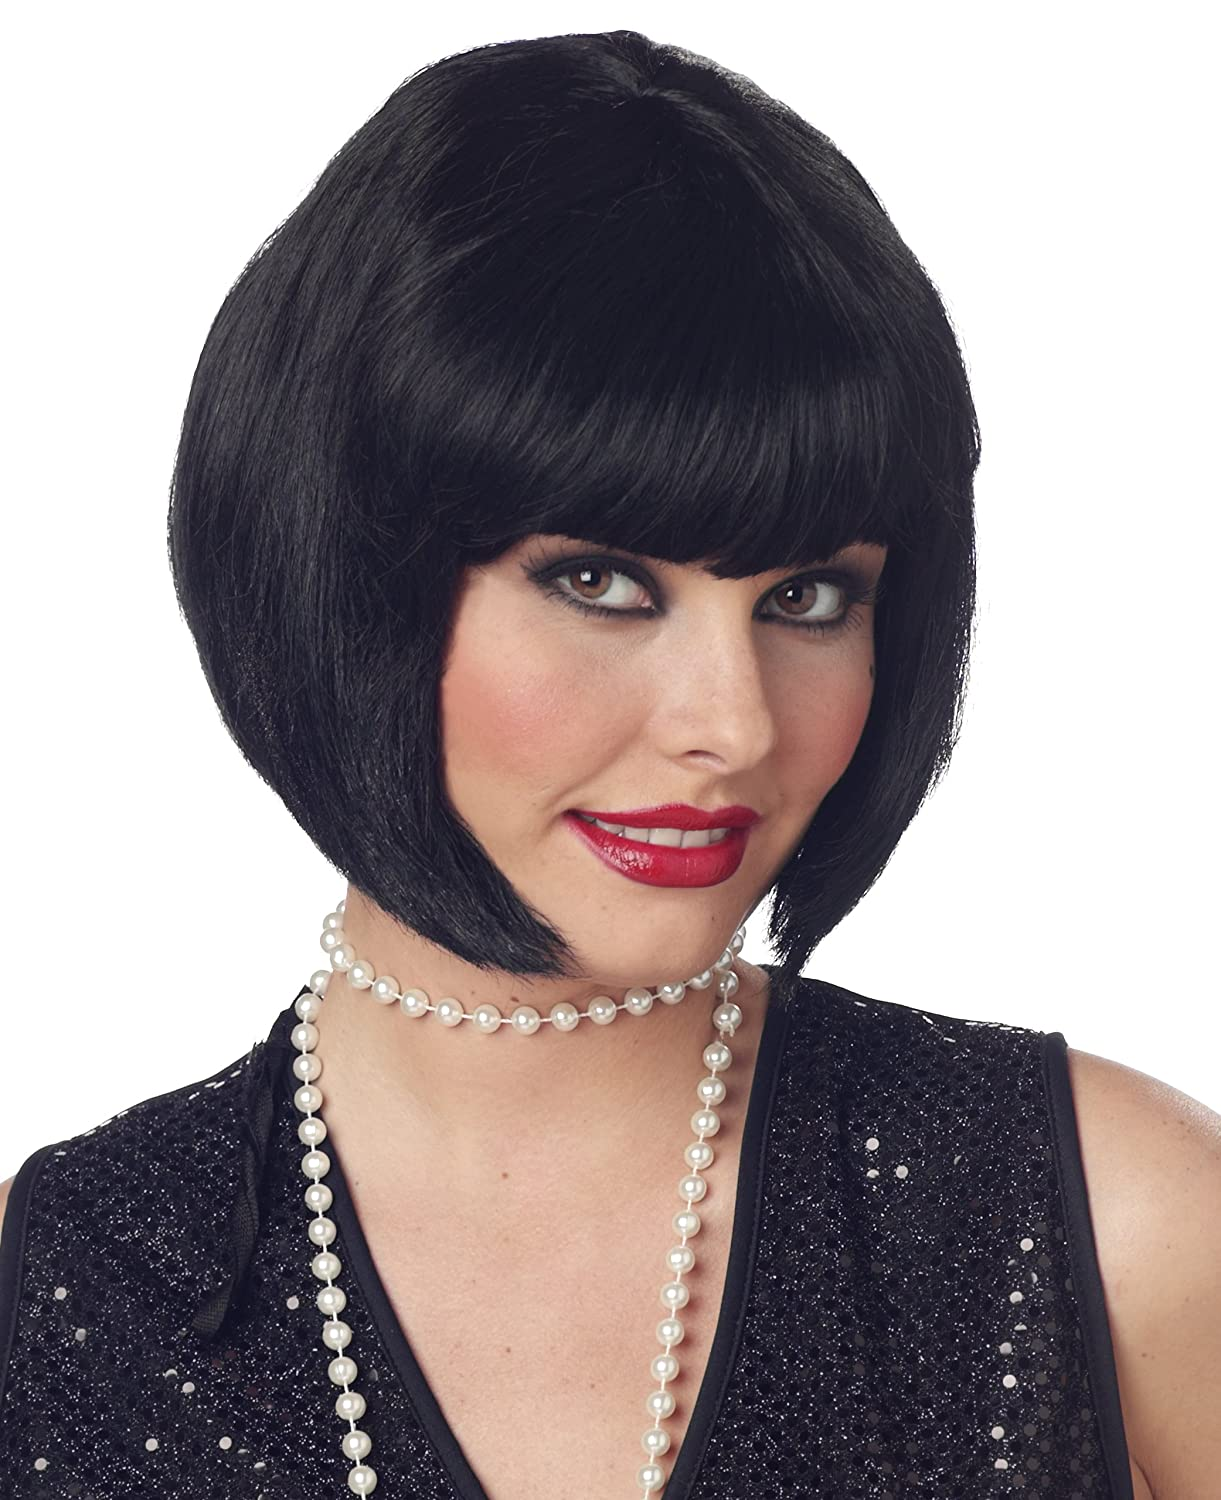 California Costumes Women's Flapper Wig, Black, One Size 70098-Black-One Size